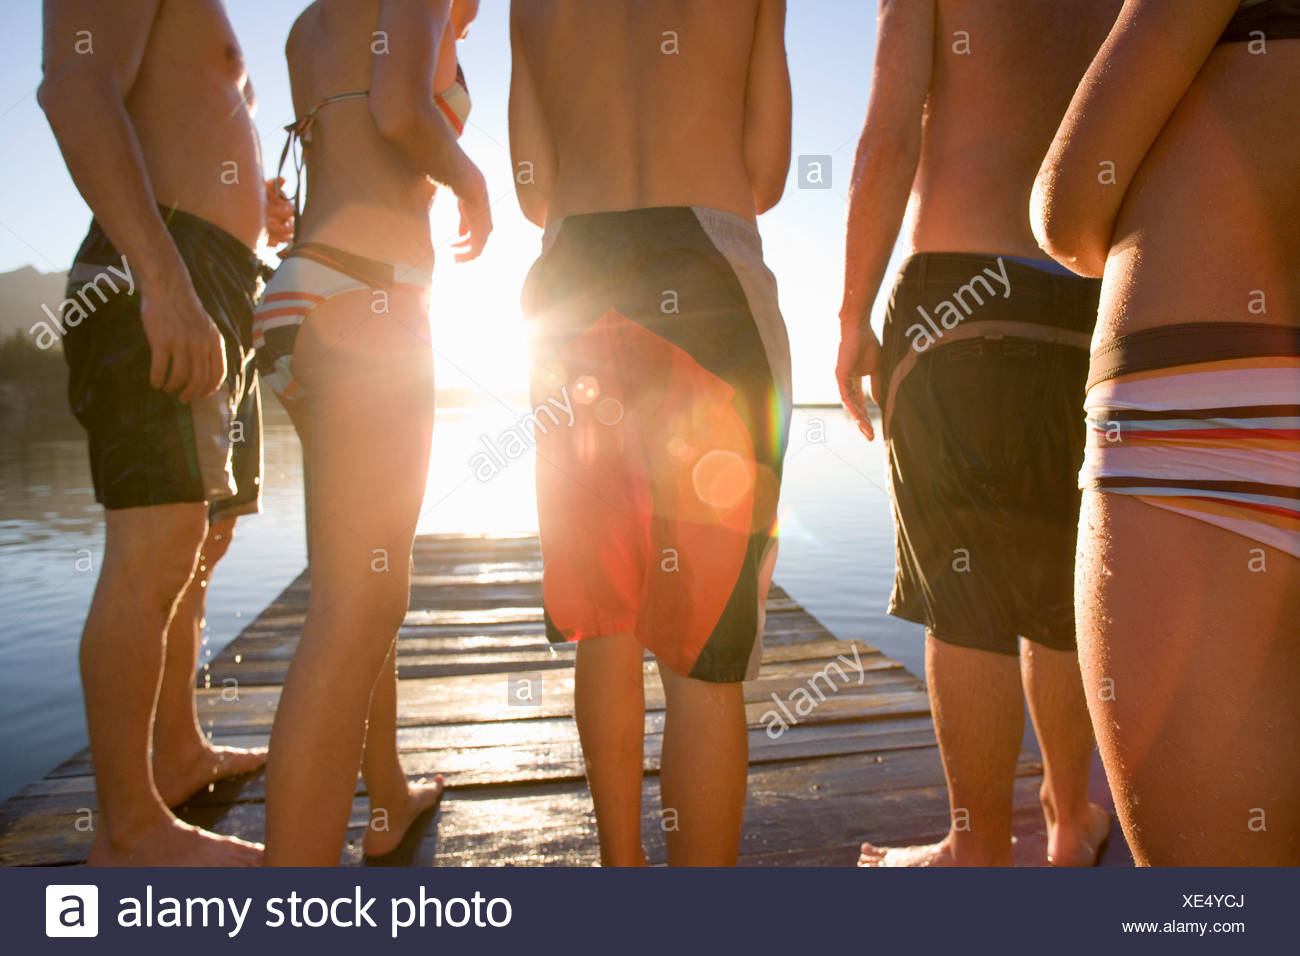 Five family members in swimwear standing on lake jetty at sunset mid section rear view lens flare backlit - Stock Image